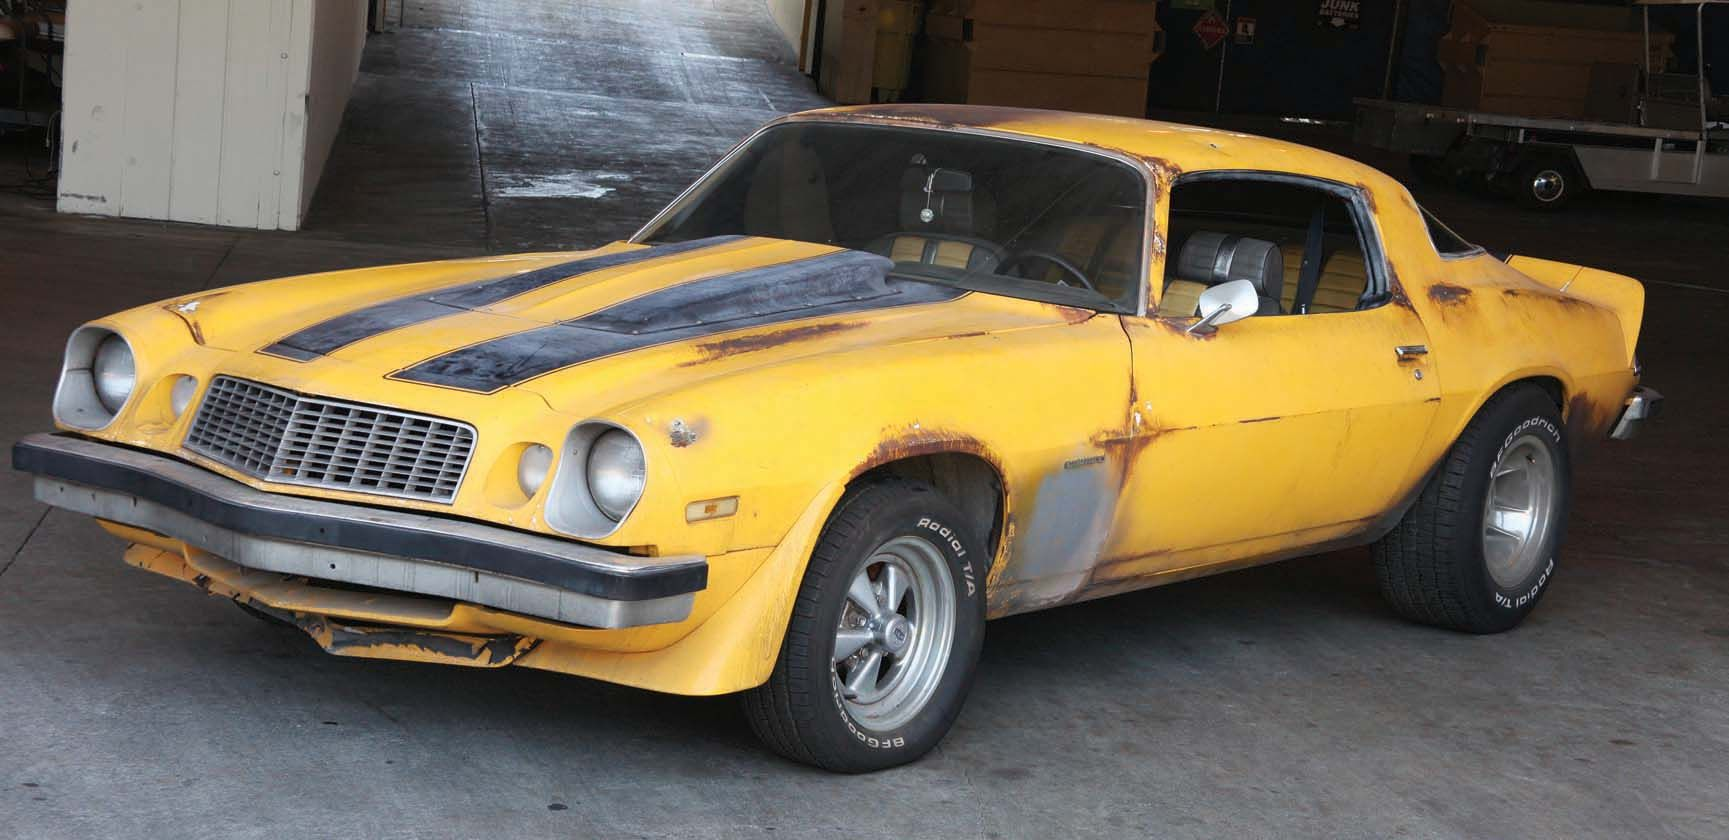 Transformers Movie Bumblebee Prior To Changing Into The Modern Day Chevrolet Camaro Chevrolet Camaro Bumblebee Camaro Cars Movie